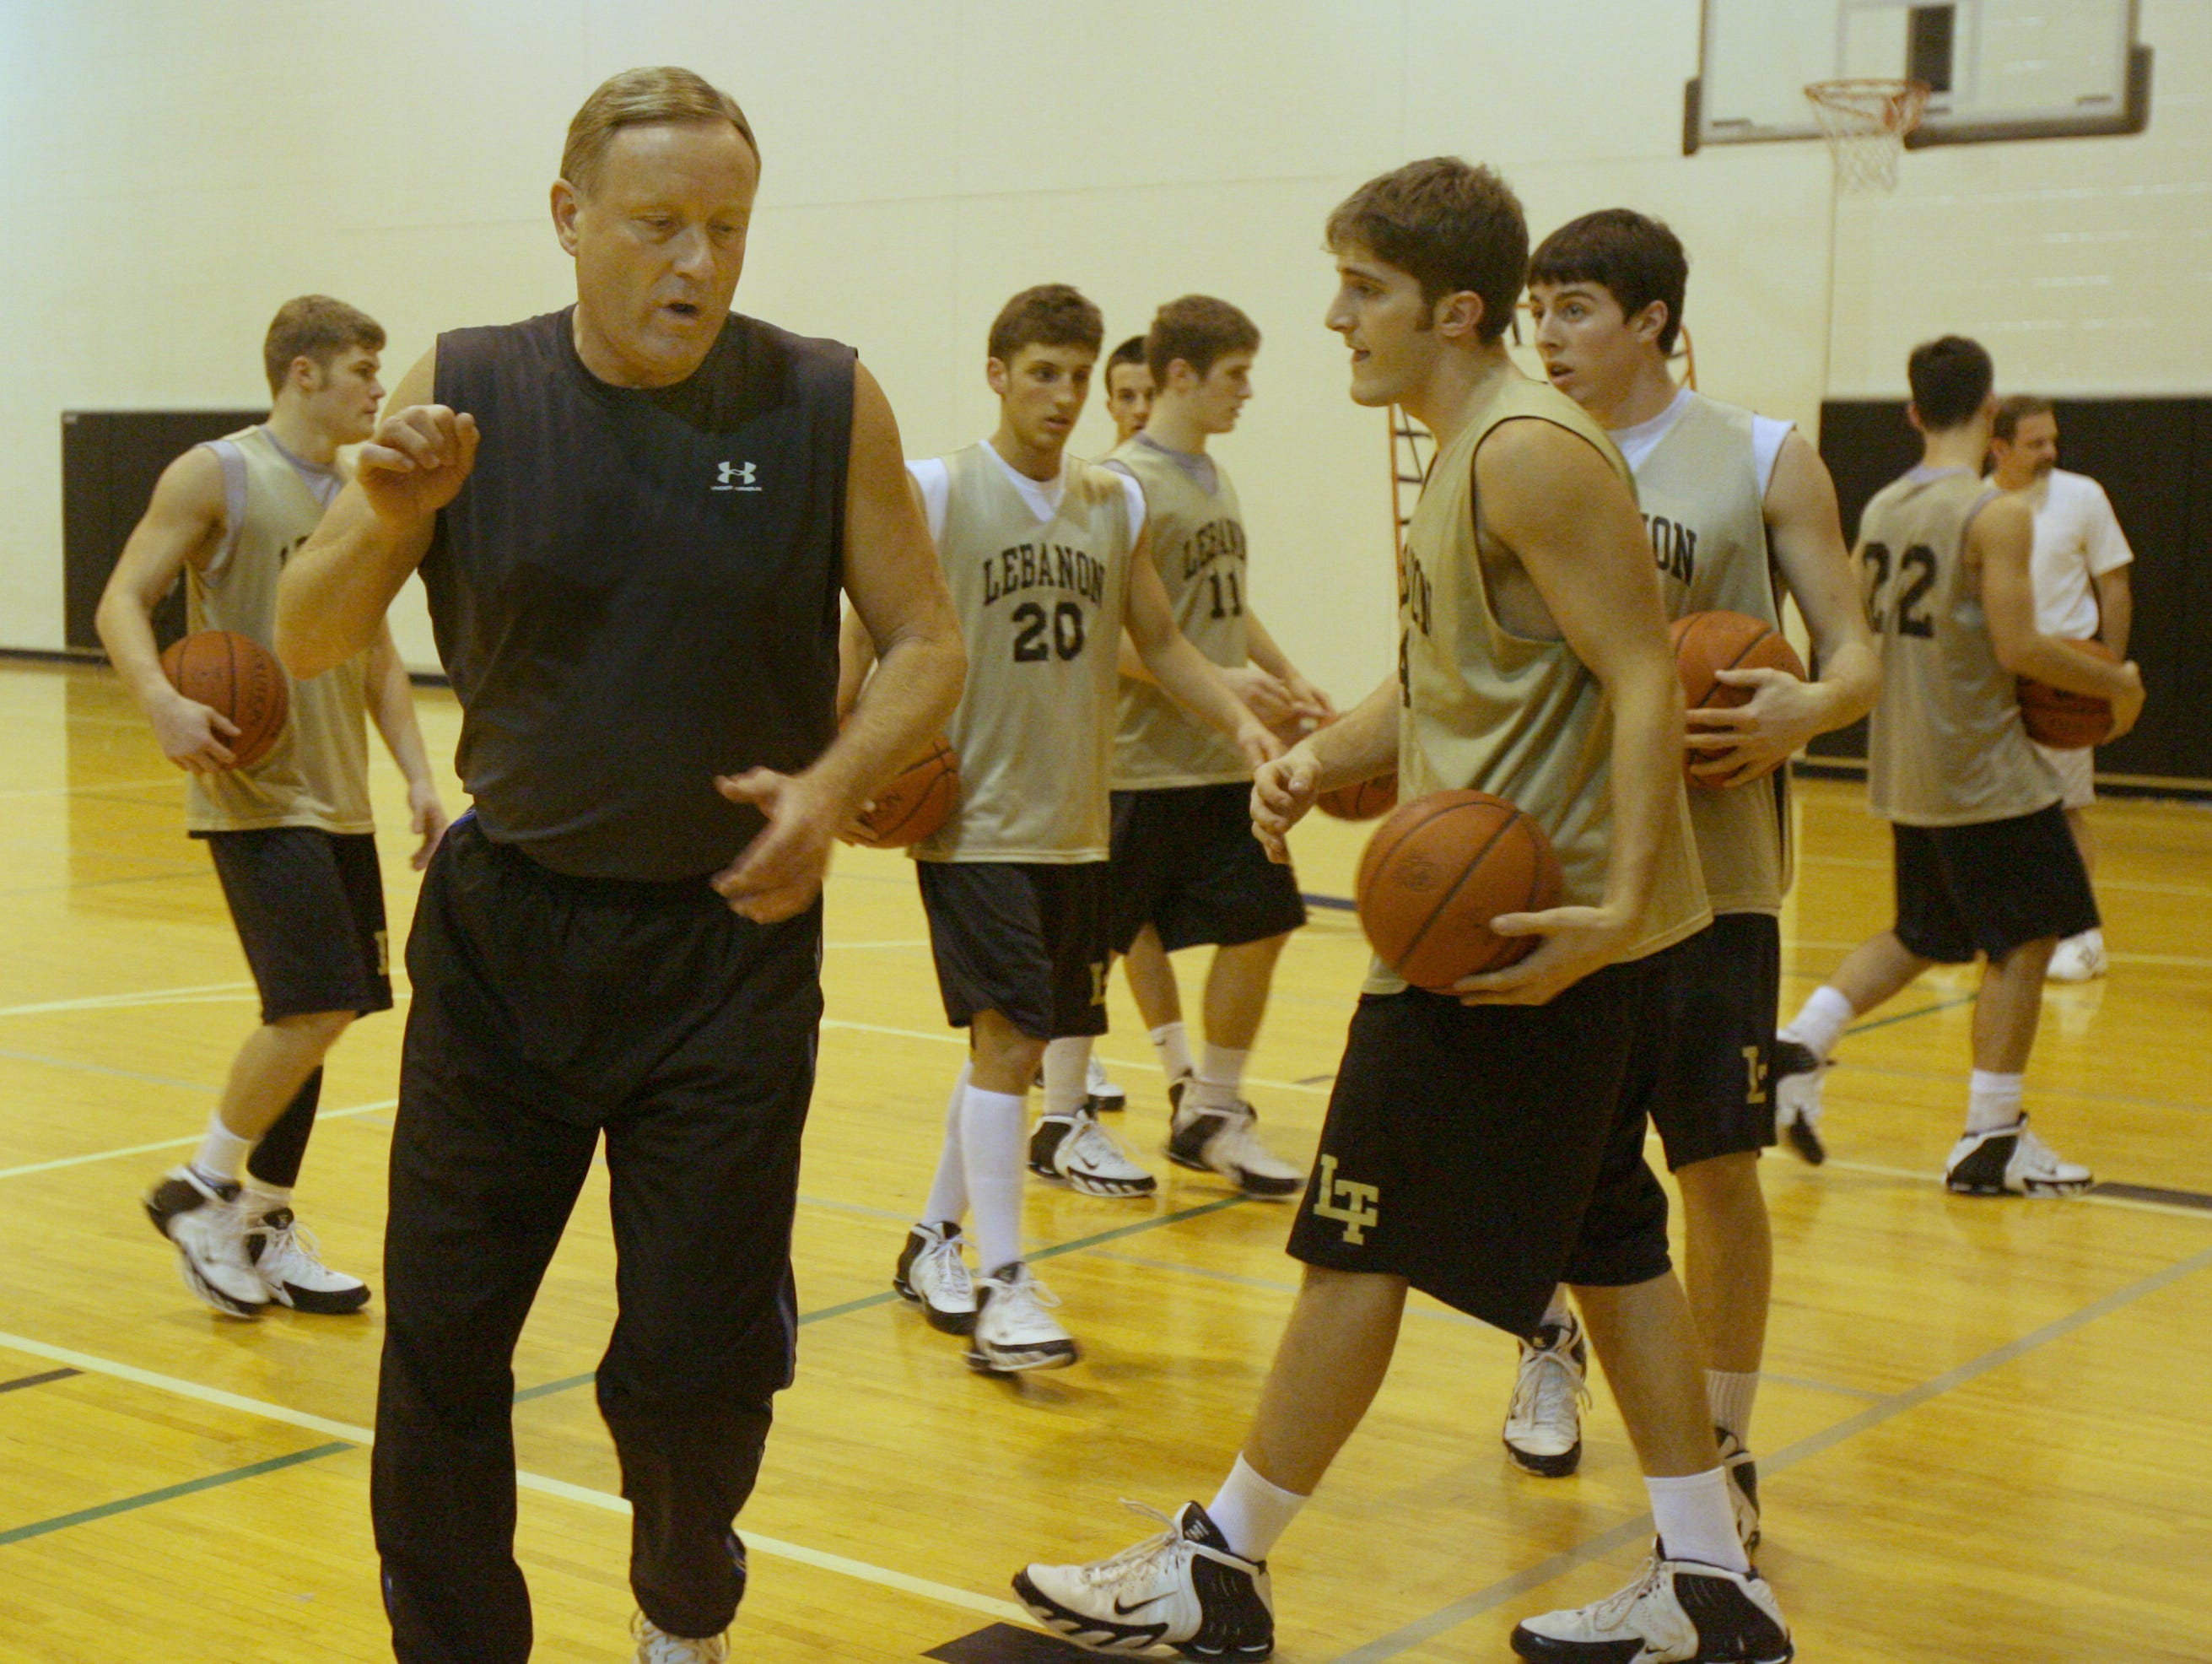 Rick Mount works with the Lebanon High School boys basketball team in 2006. His relationship with the Tigers nowadays is complicated.